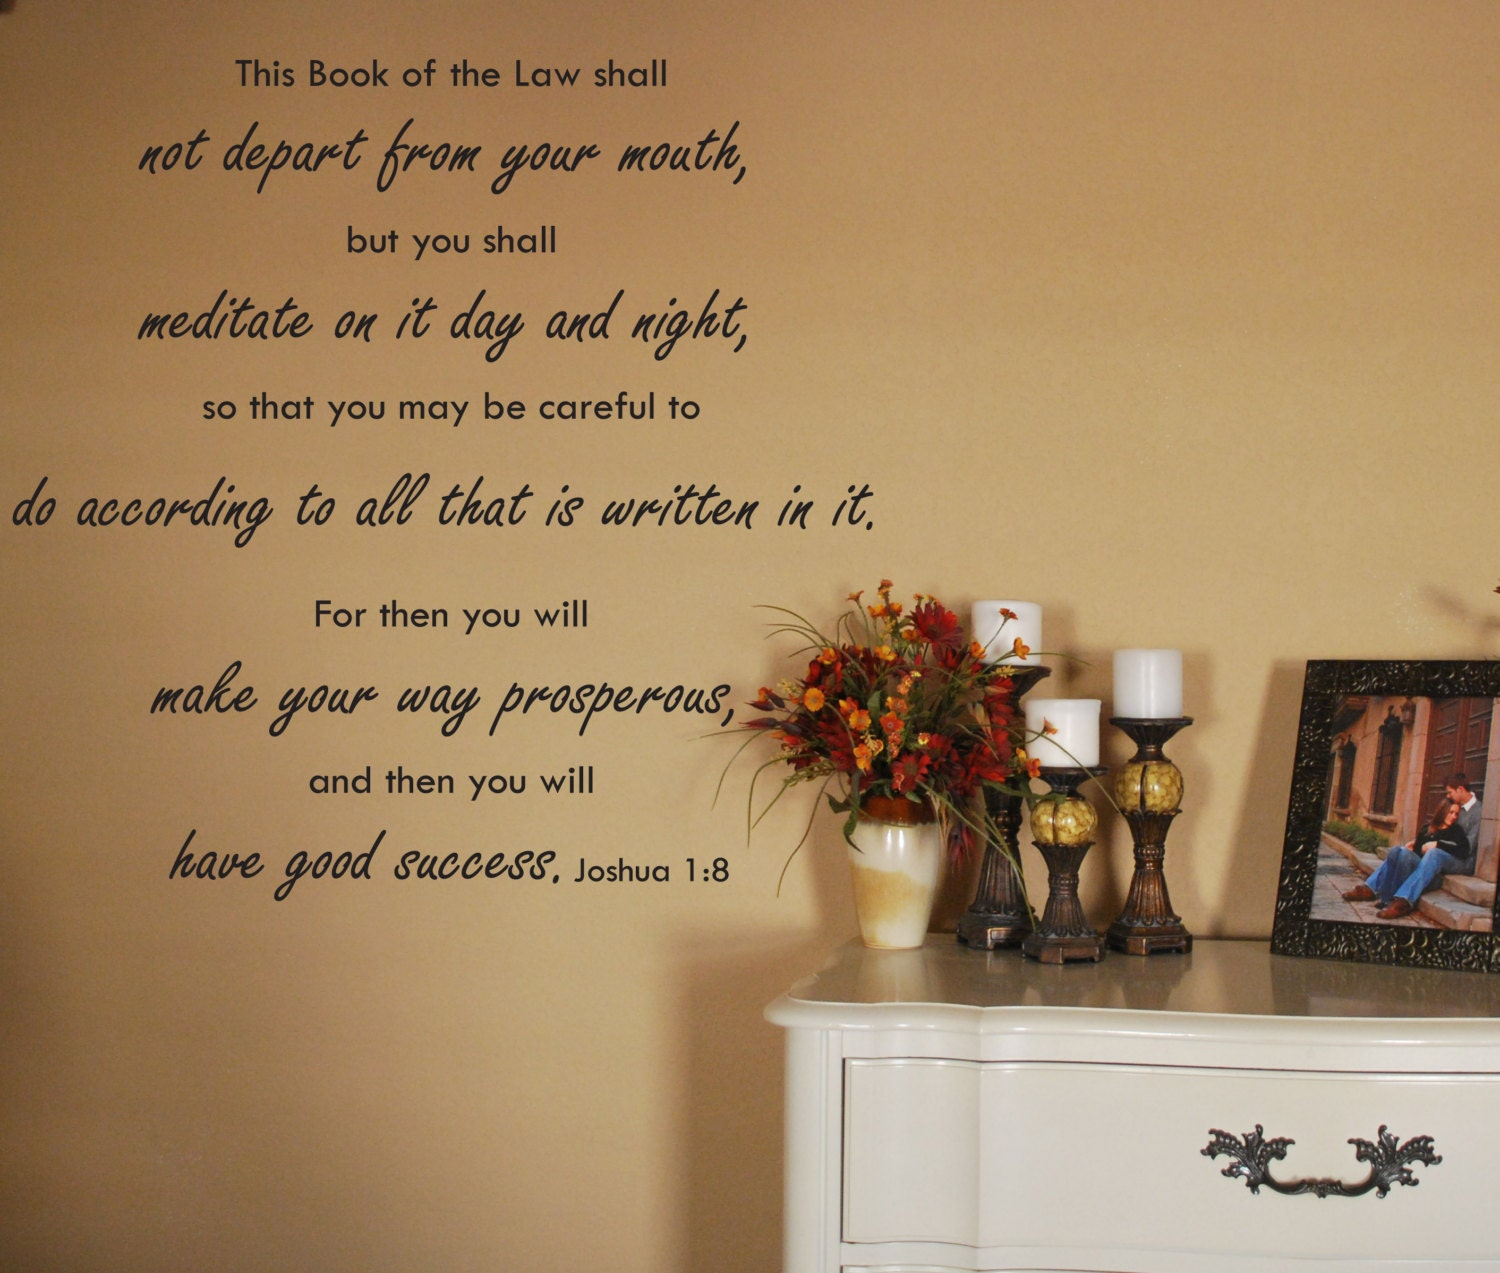 Vinyl Wall Art Decal Joshua 1:8 This Book of the Law